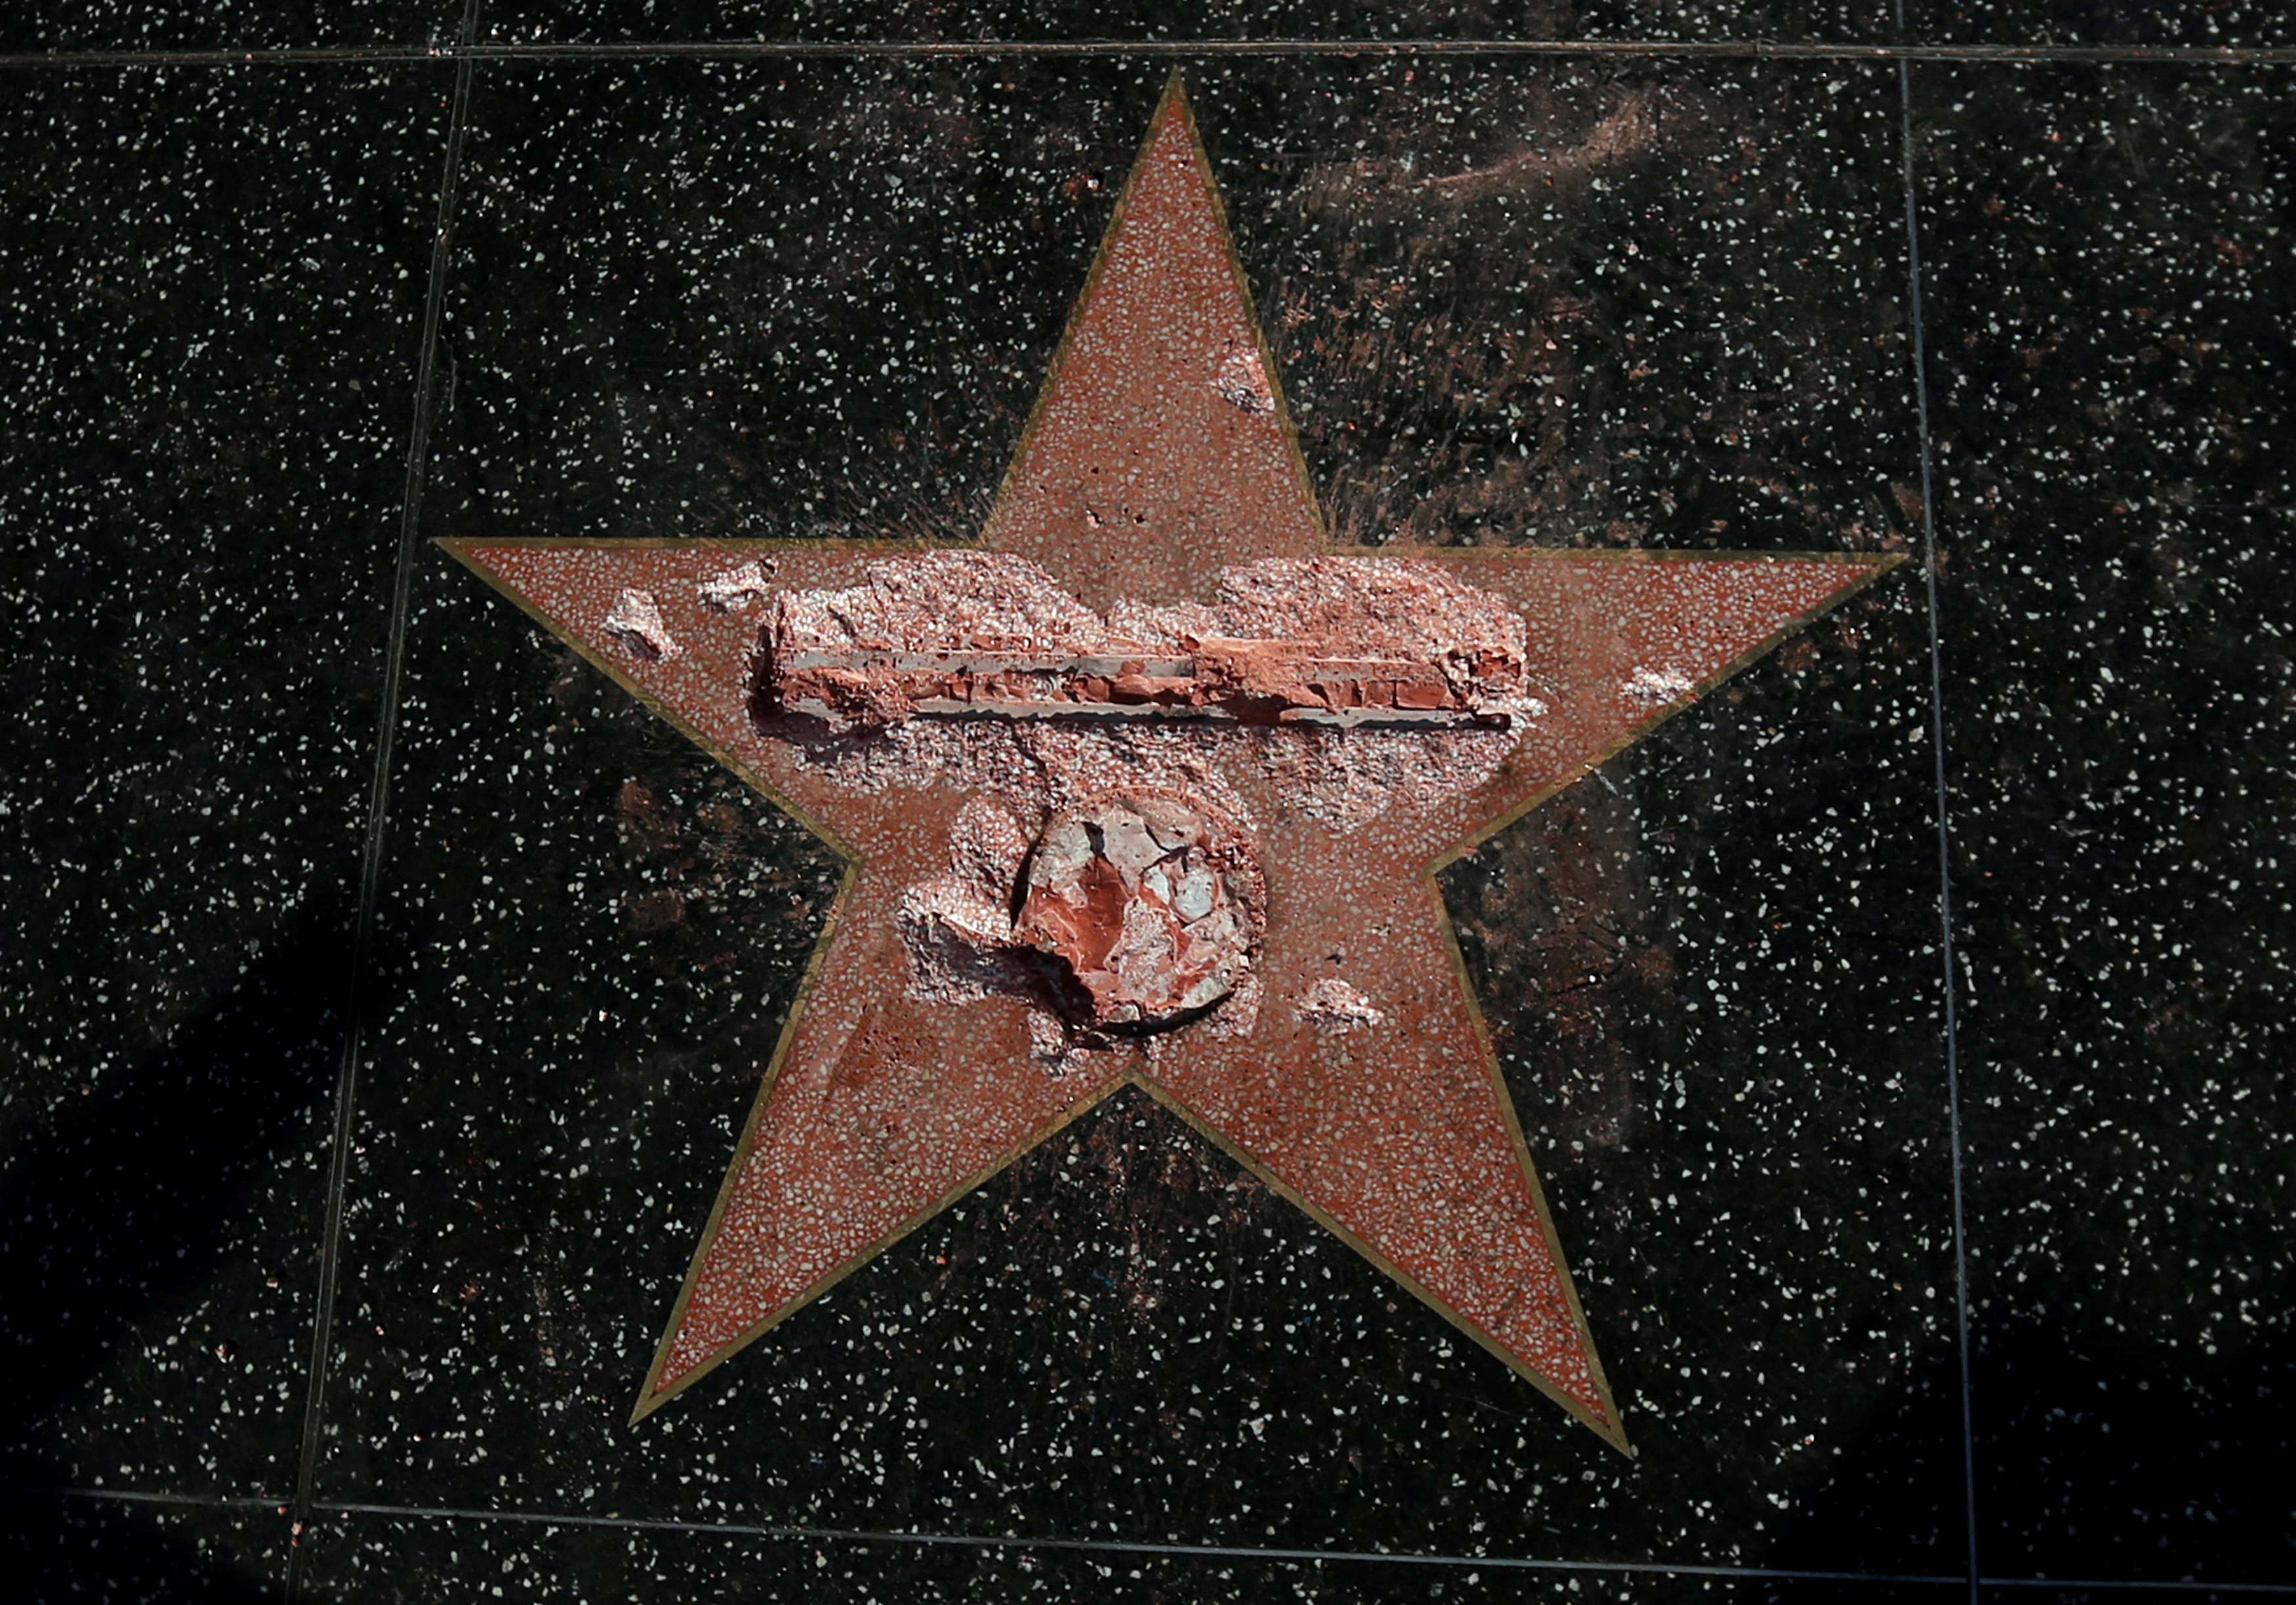 Donald Trump's star on the Hollywood Walk of Fame is seen after it was vandalized, on Oct. 26, 2016.